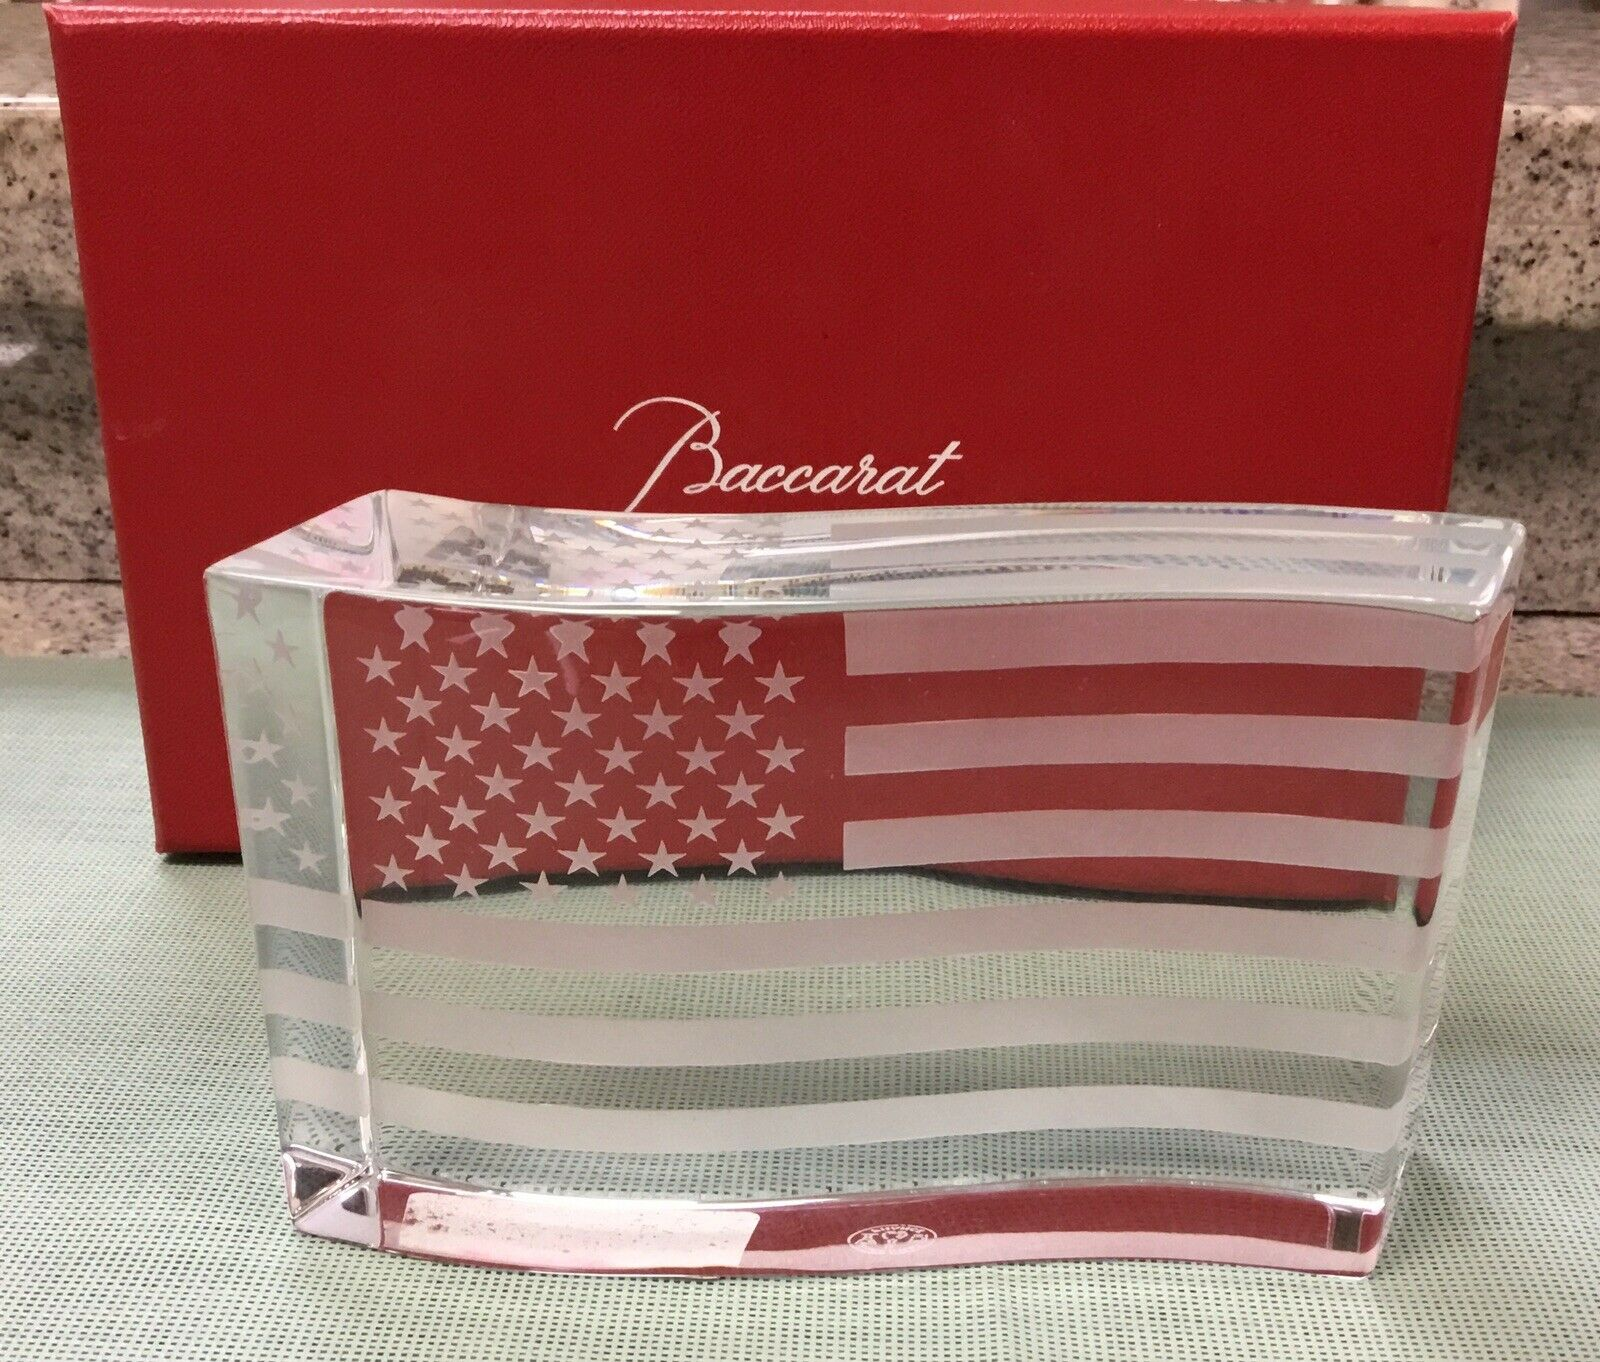 Baccarat Stars and Stripes Crystal Paperweight